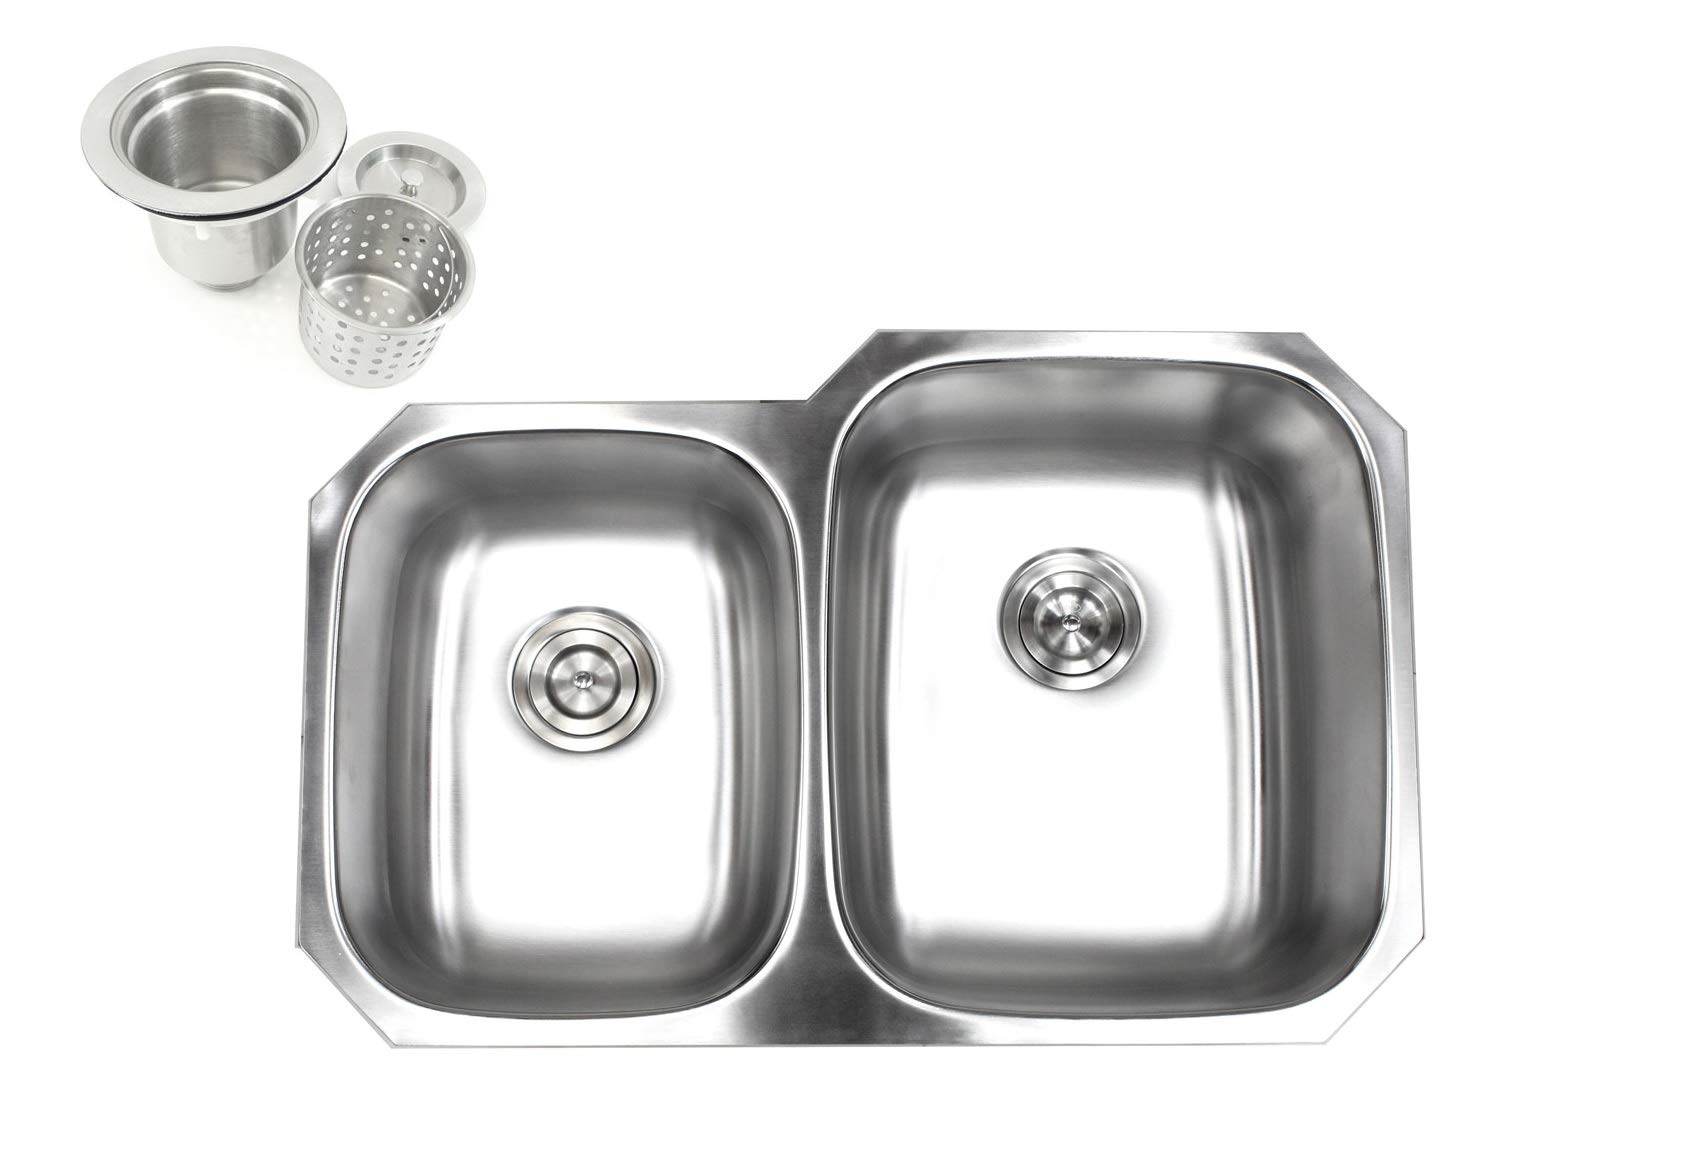 Kingsman 32 inch 18 Gauge Stainless Steel Undermount Double Bowl (40/60) Kitchen Sink (Sink with Strainer) by KH KINGSMAN HARDWARE (Image #1)